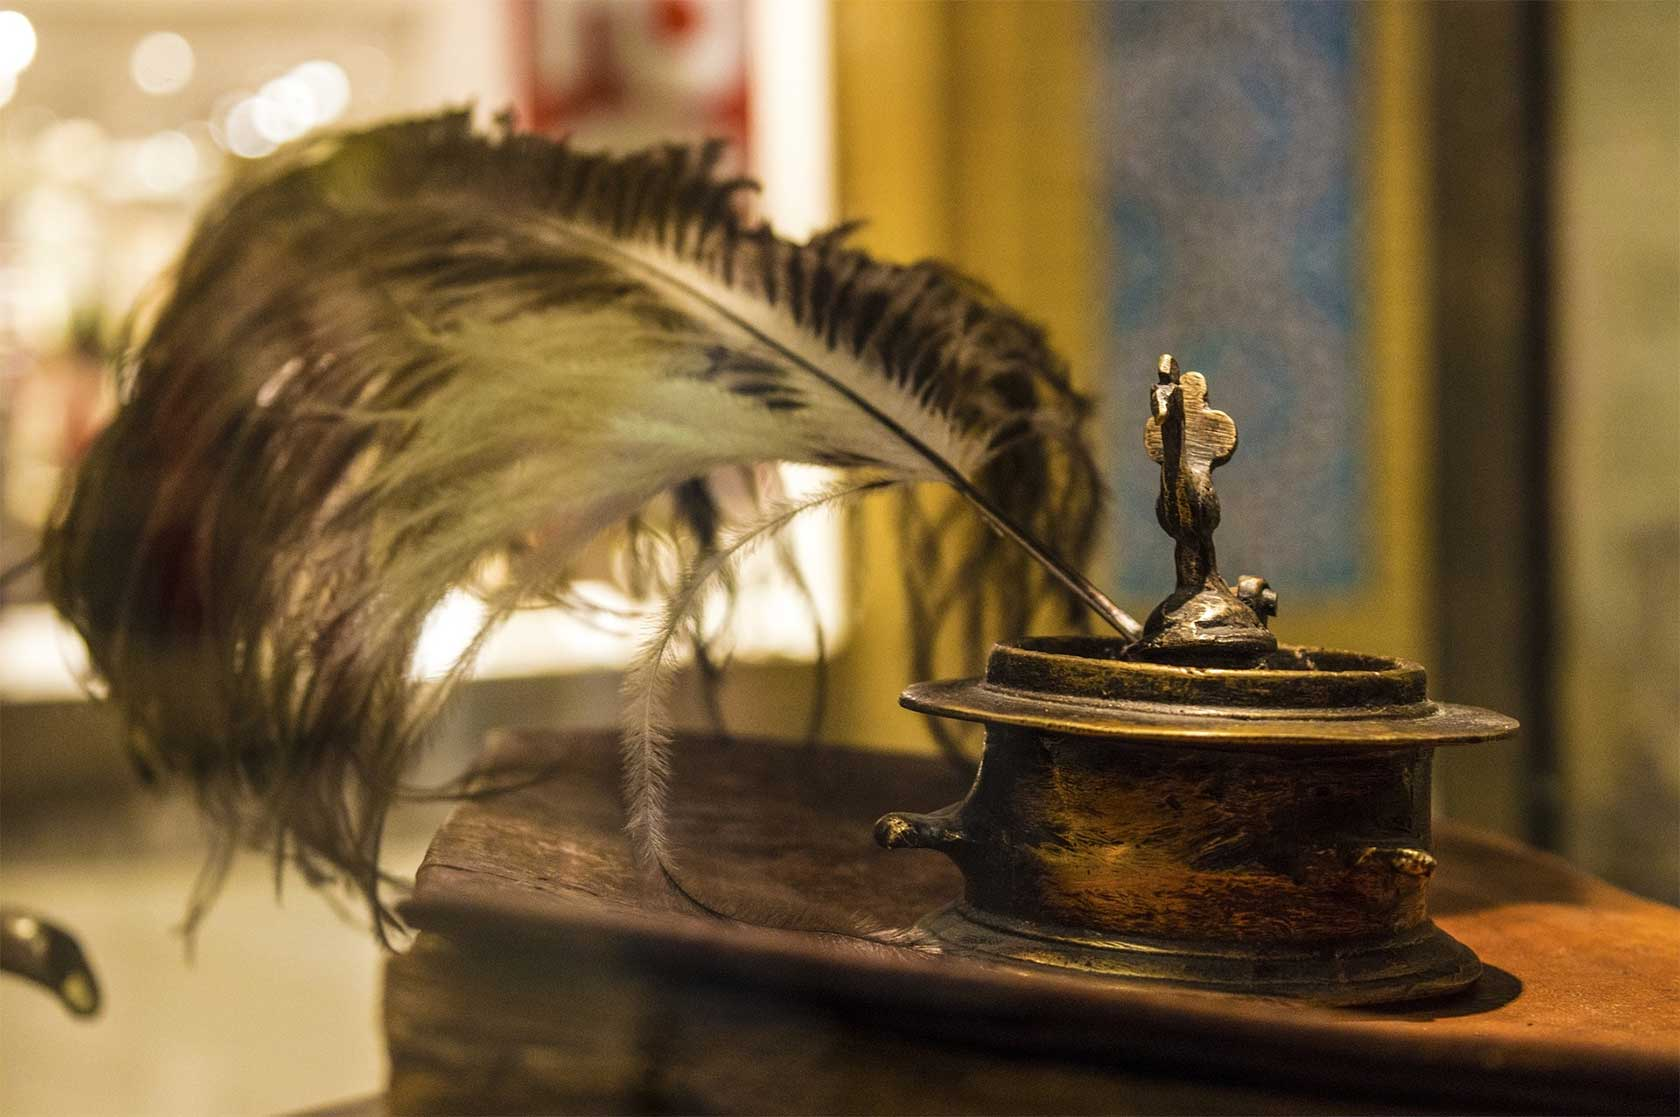 Old-Style Inkpot And Quill